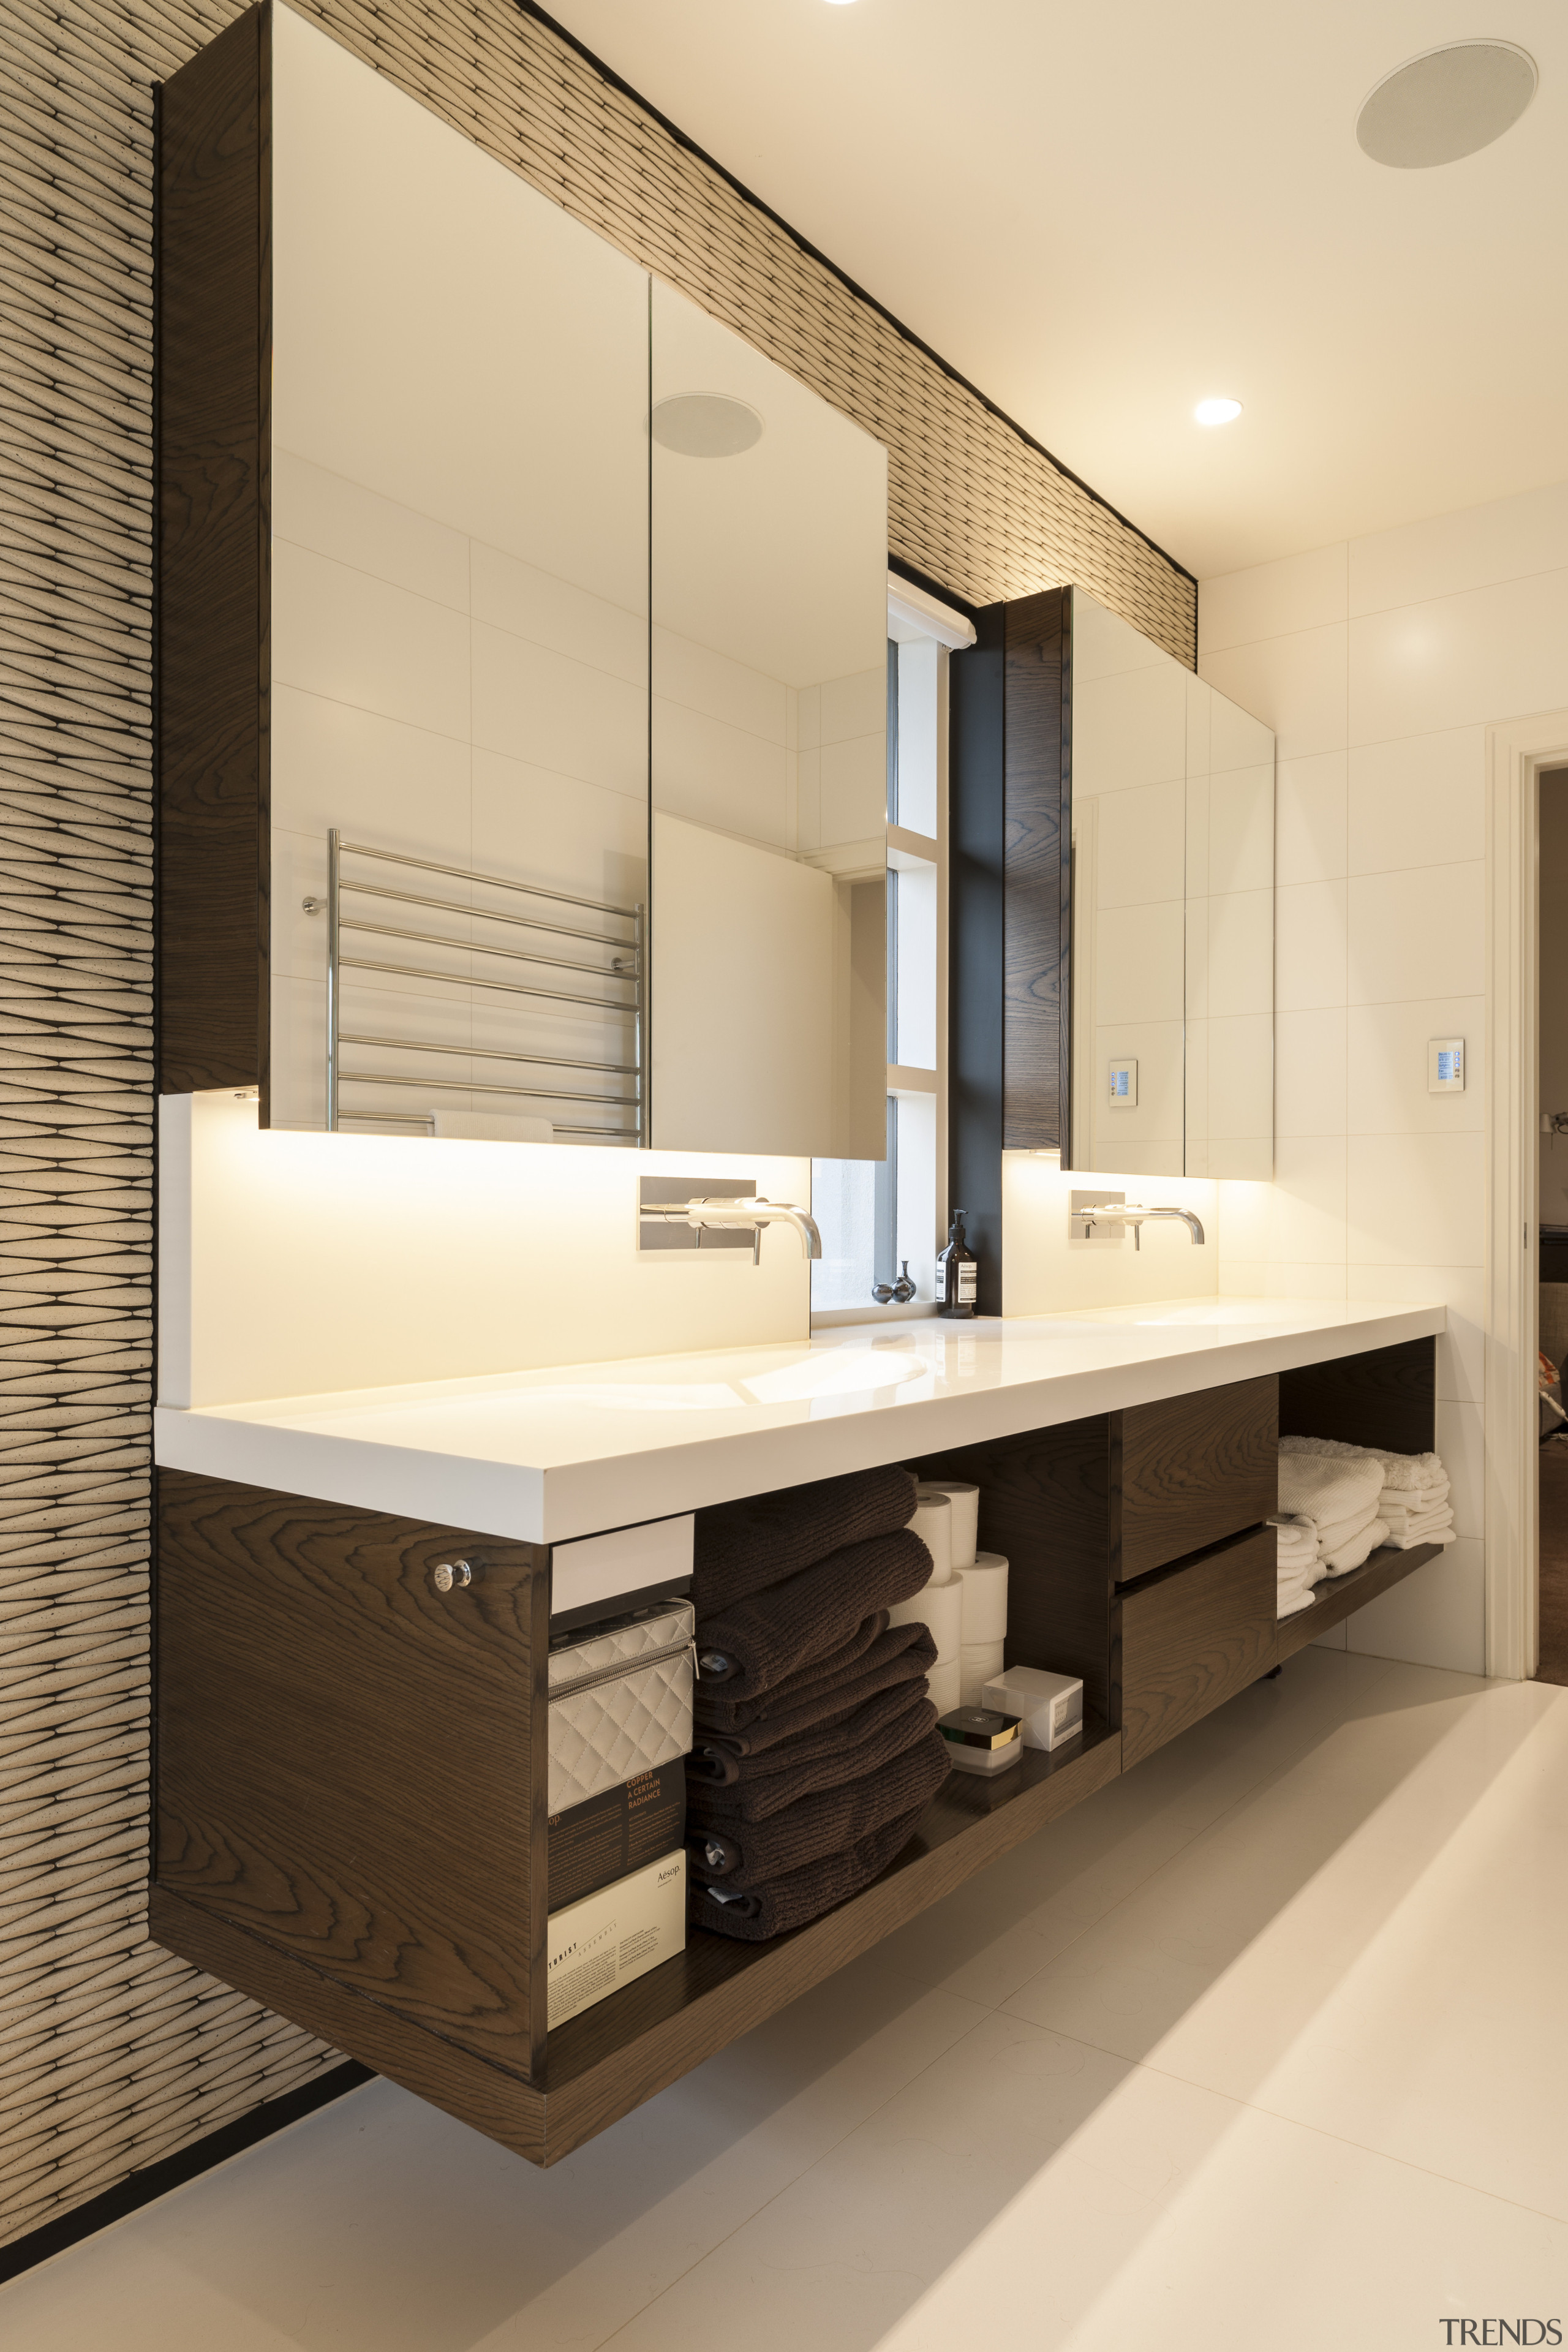 Not all neutrals are created equal  this bathroom, bathroom accessory, bathroom cabinet, cabinetry, interior design, product design, room, sink, orange, brown